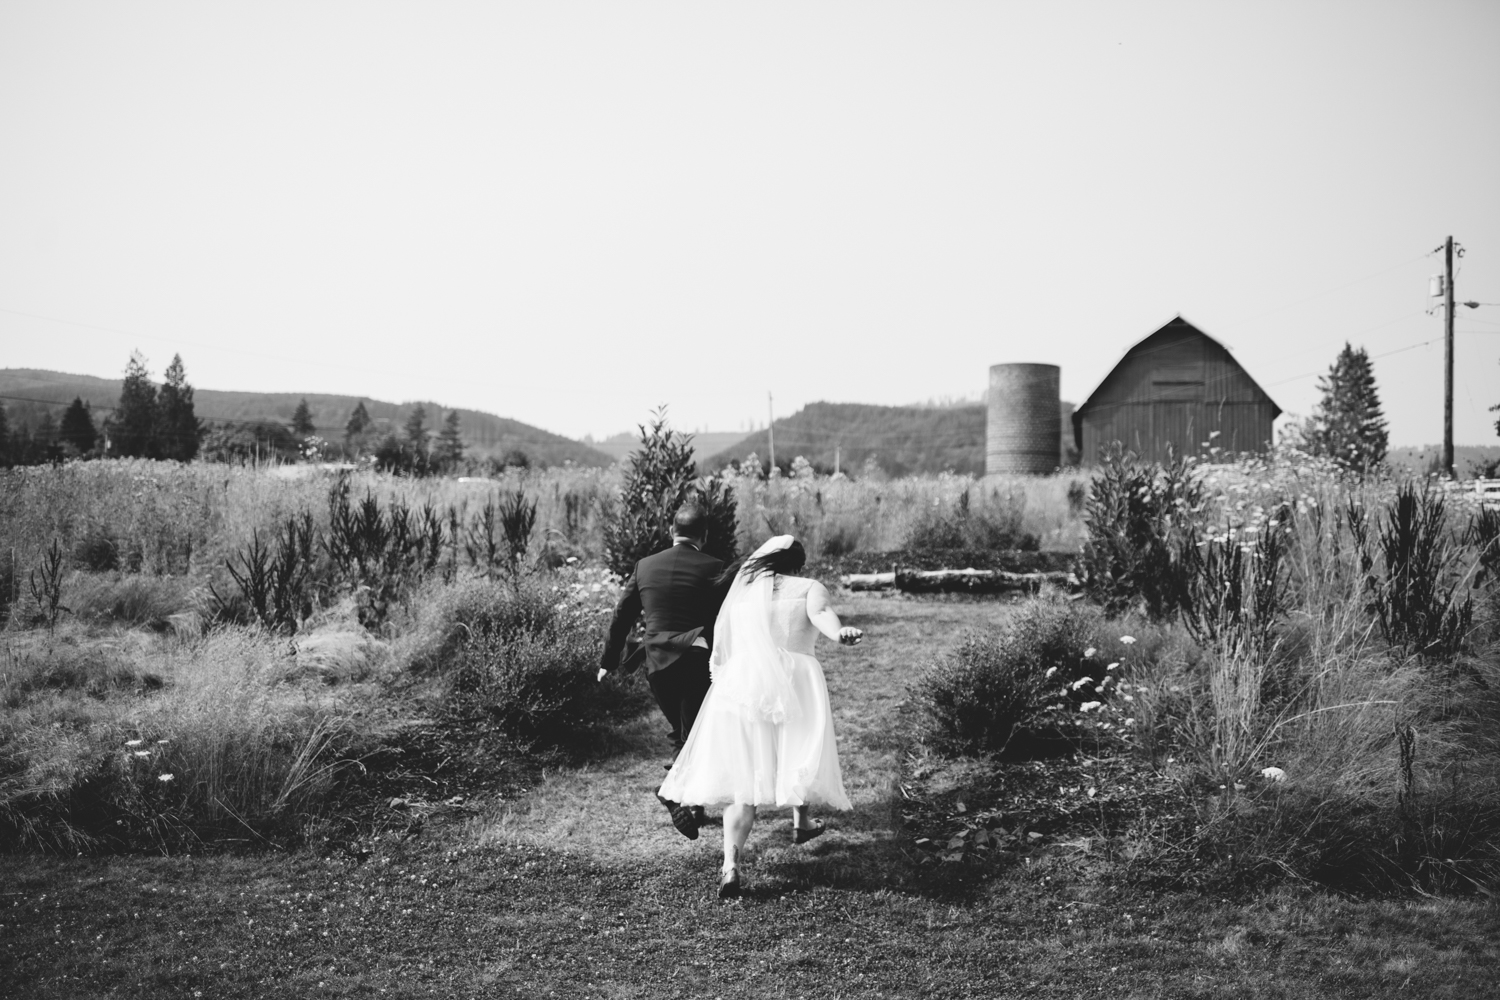 richmondvaweddingphotography-59.jpg